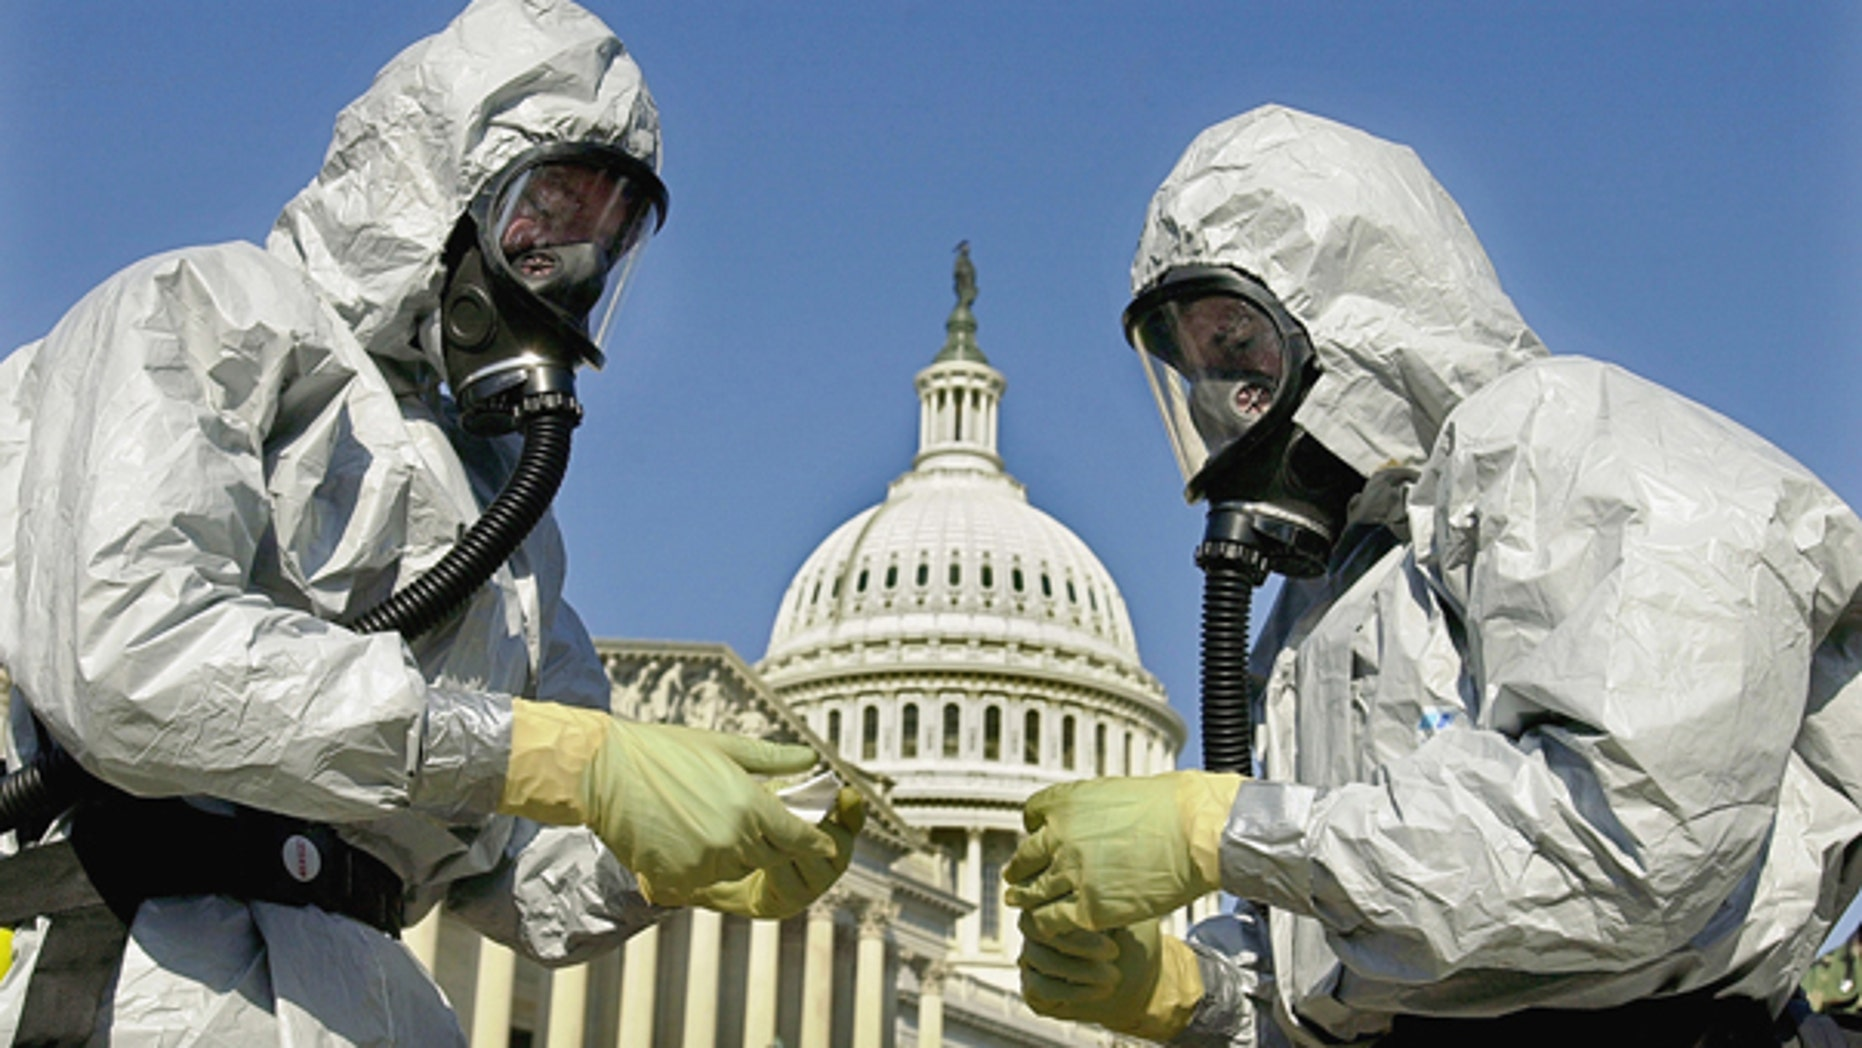 FILE: In this Oct. 30, 2001, file photo, members of the U.S. Marine Corps' Chemical-Biological Incident Response Force demonstrate anthrax clean-up techniques during a news conference in on Capitol Hill in Washington.  (AP Photo)